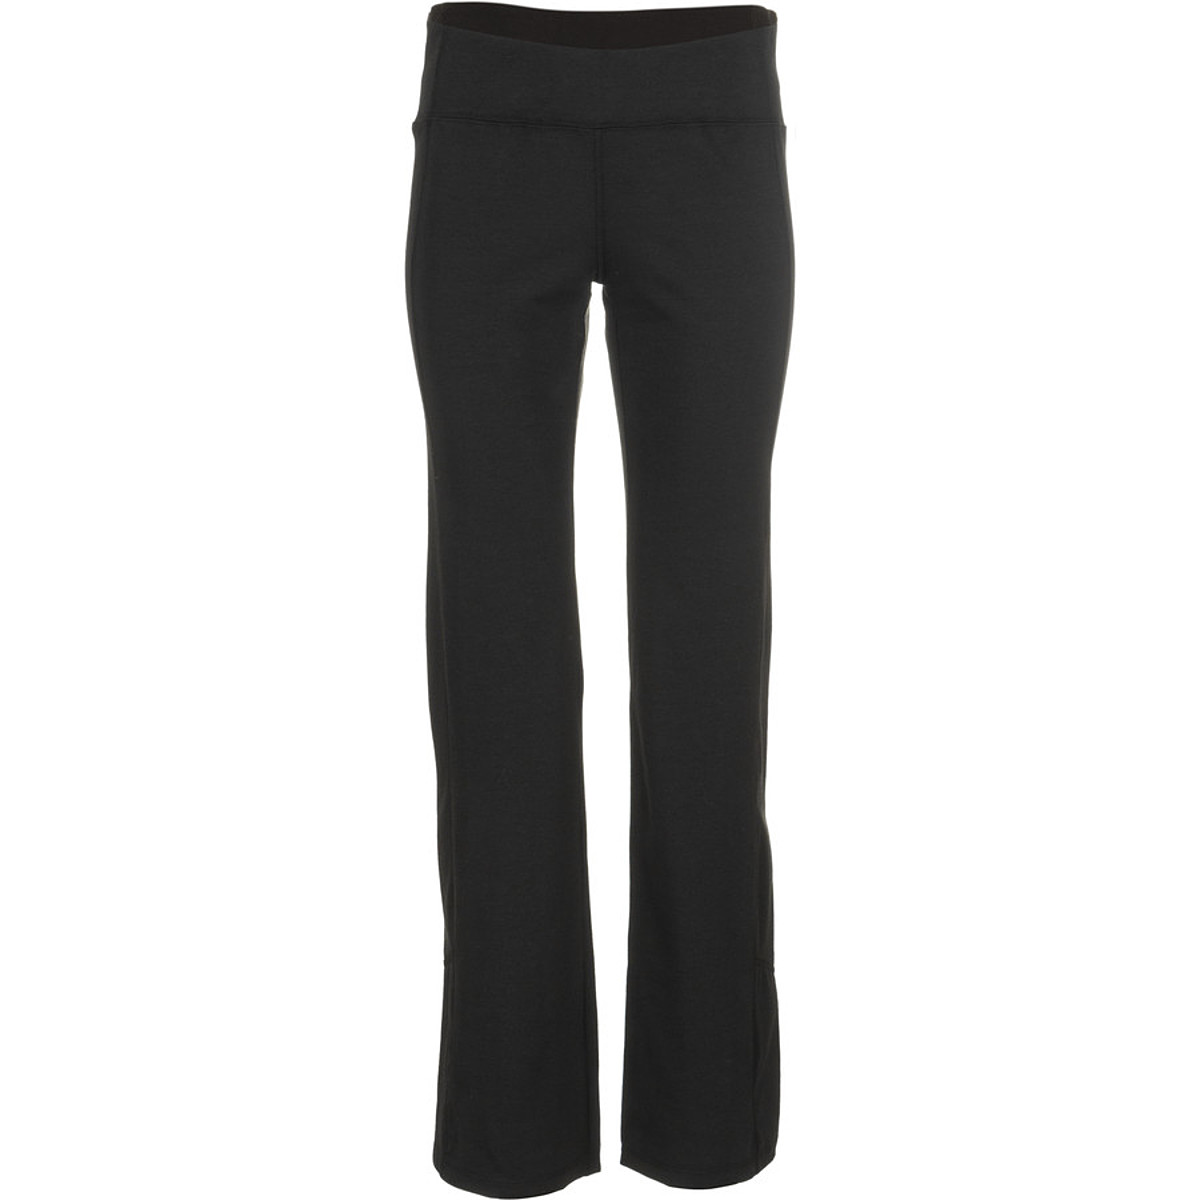 Ibex Synergy Fit Pant